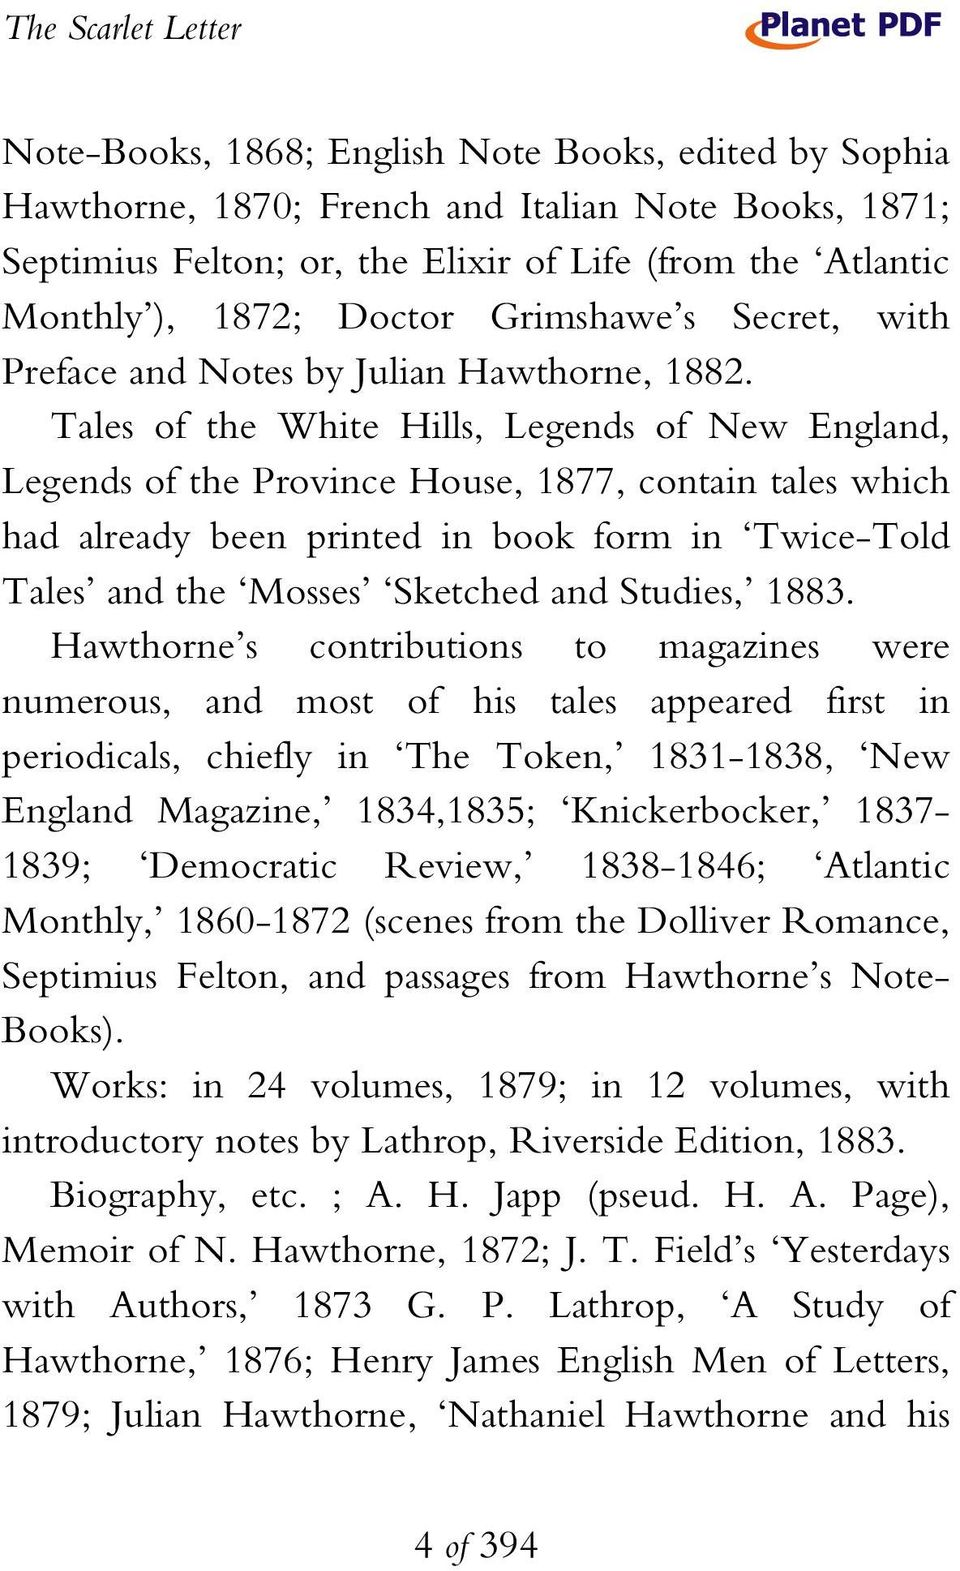 Tales of the White Hills, Legends of New England, Legends of the Province House, 1877, contain tales which had already been printed in book form in Twice-Told Tales and the Mosses Sketched and